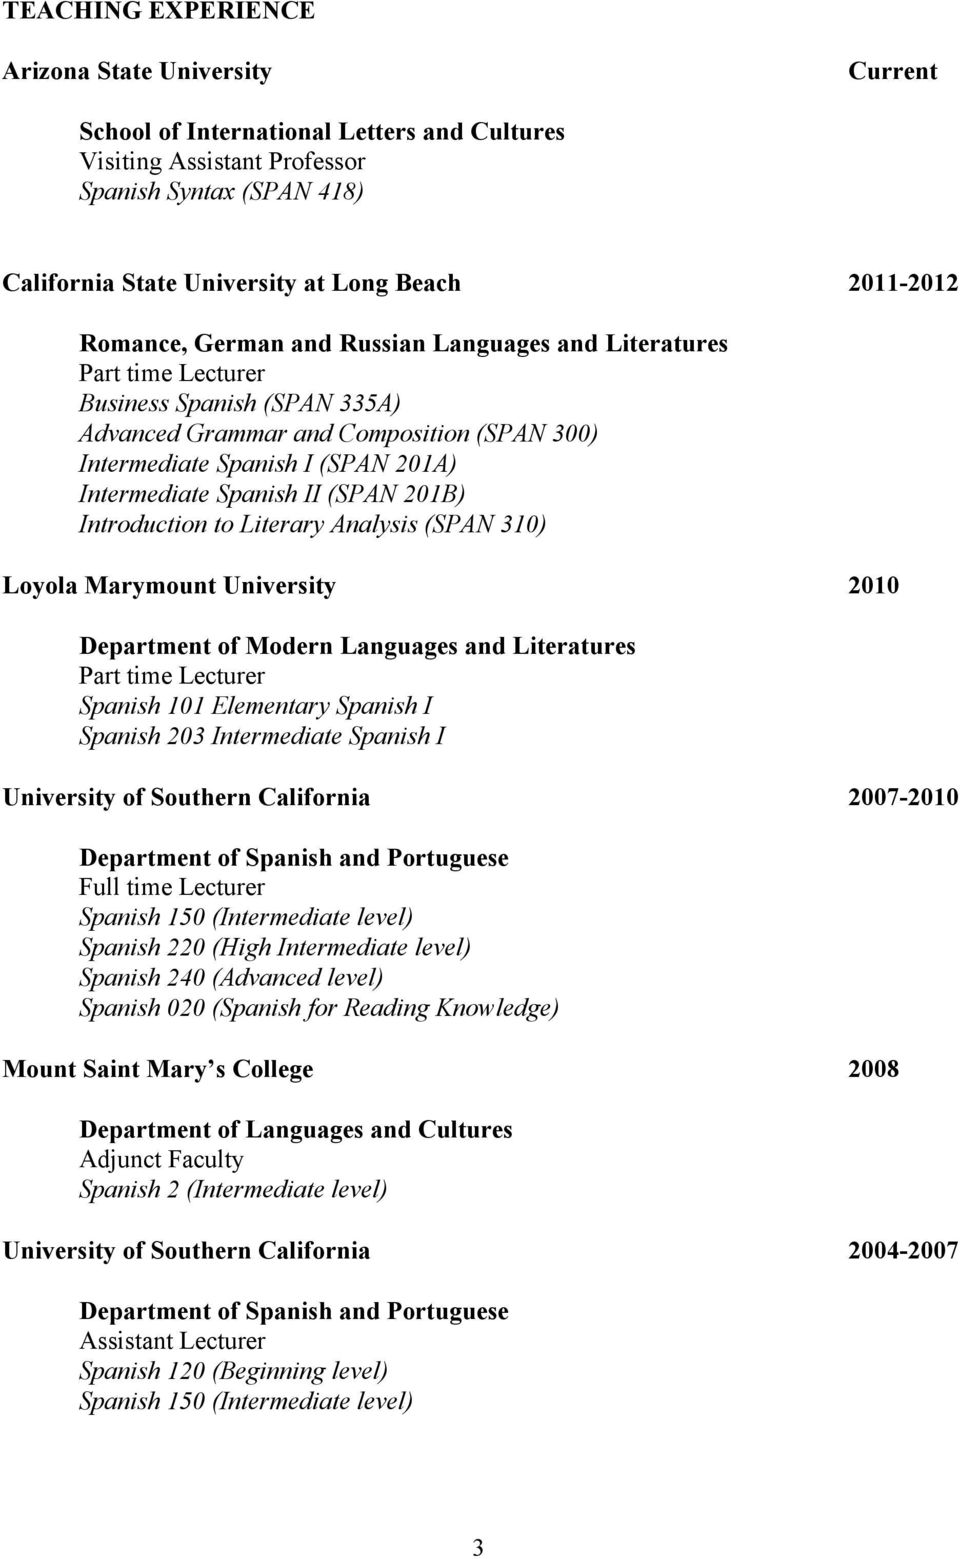 Intermediate Spanish II (SPAN 201B) Introduction to Literary Analysis (SPAN 310) Loyola Marymount University 2010 Department of Modern Languages and Literatures Part time Lecturer Spanish 101